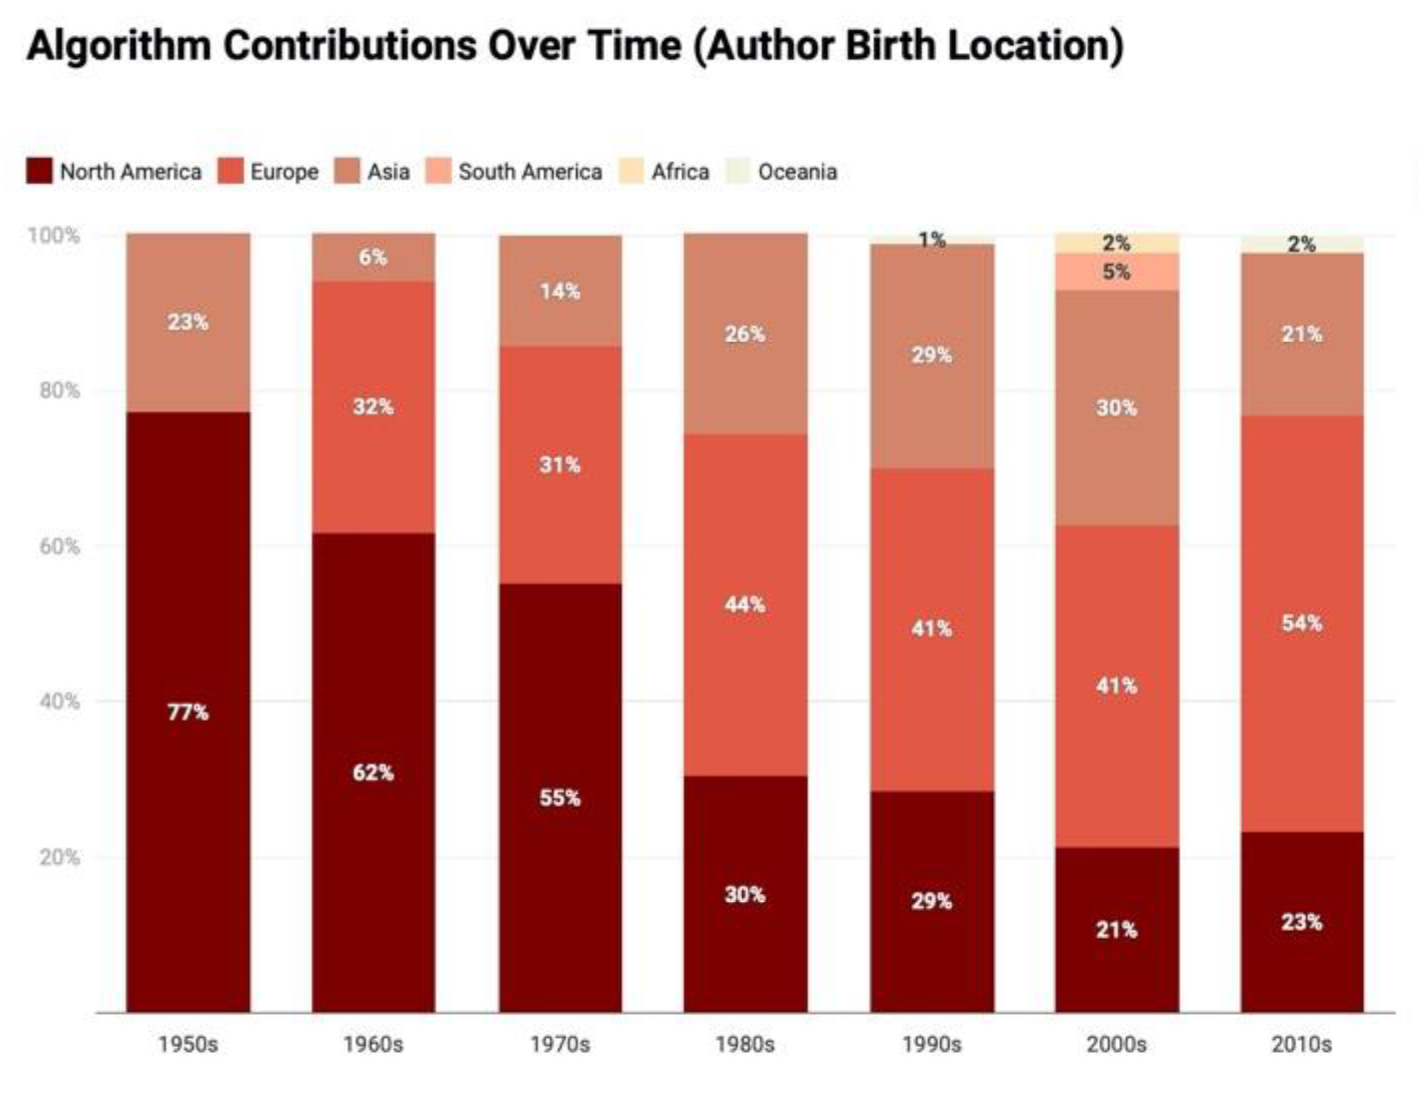 Algorithm contributions by birth country